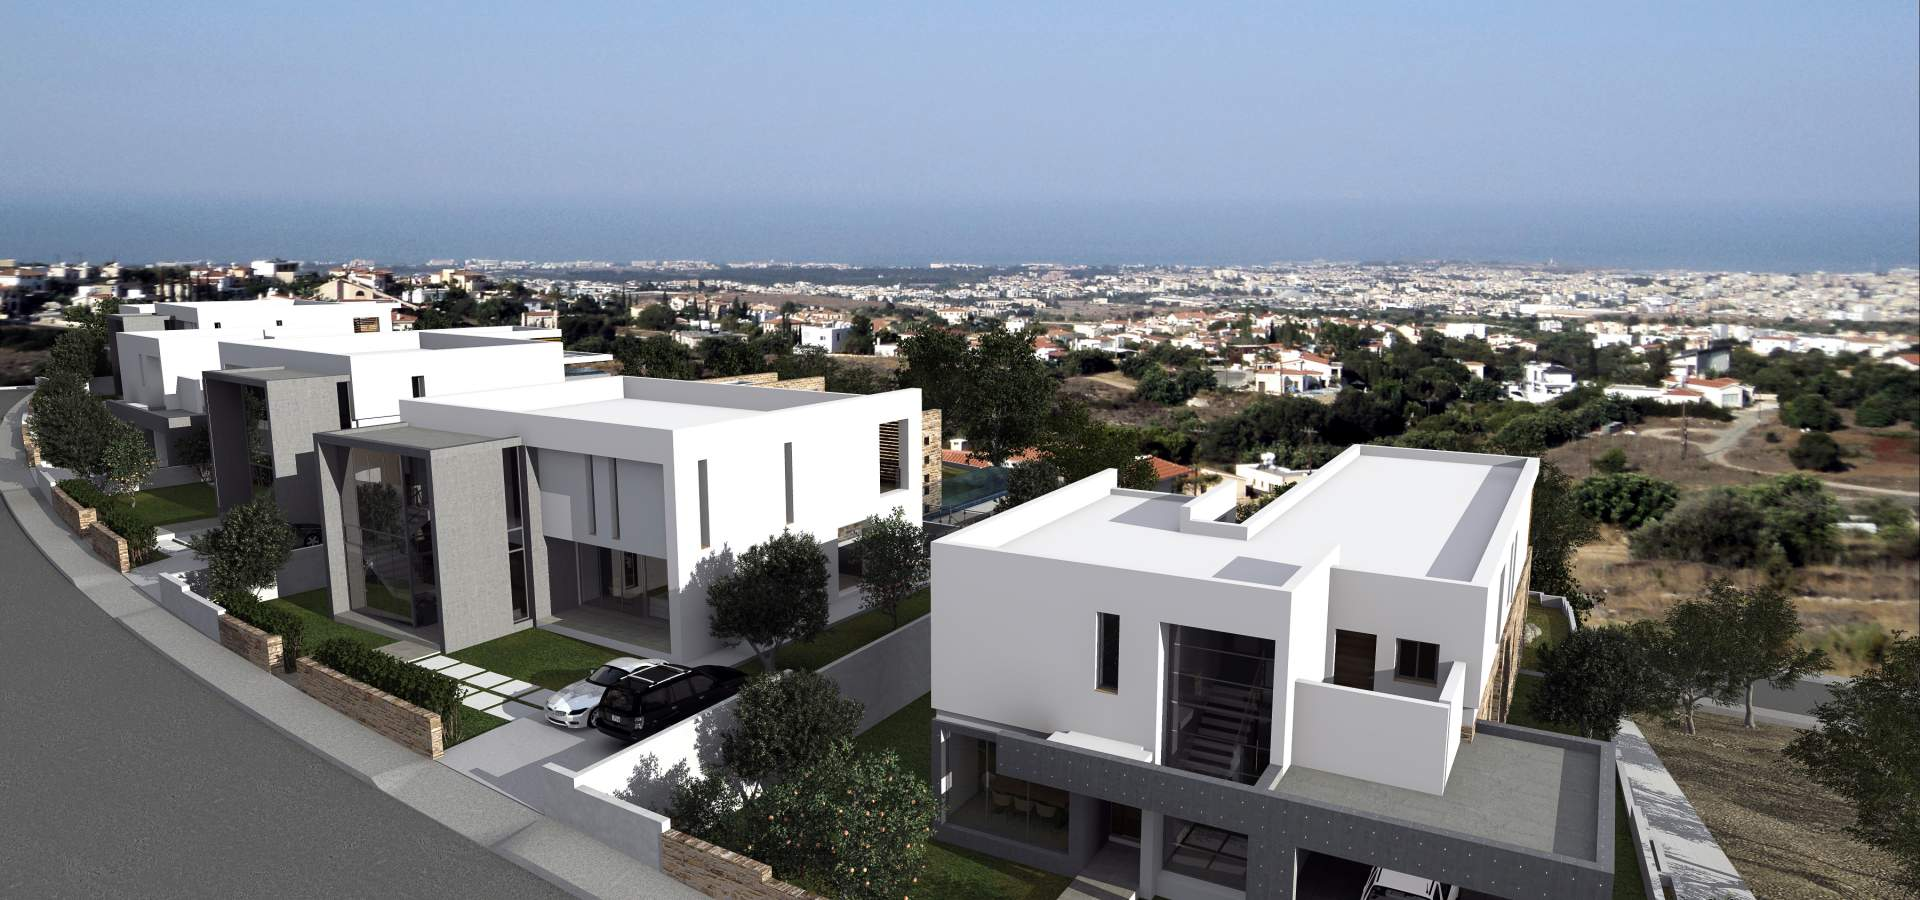 Konia Modern Luxury Residences General View